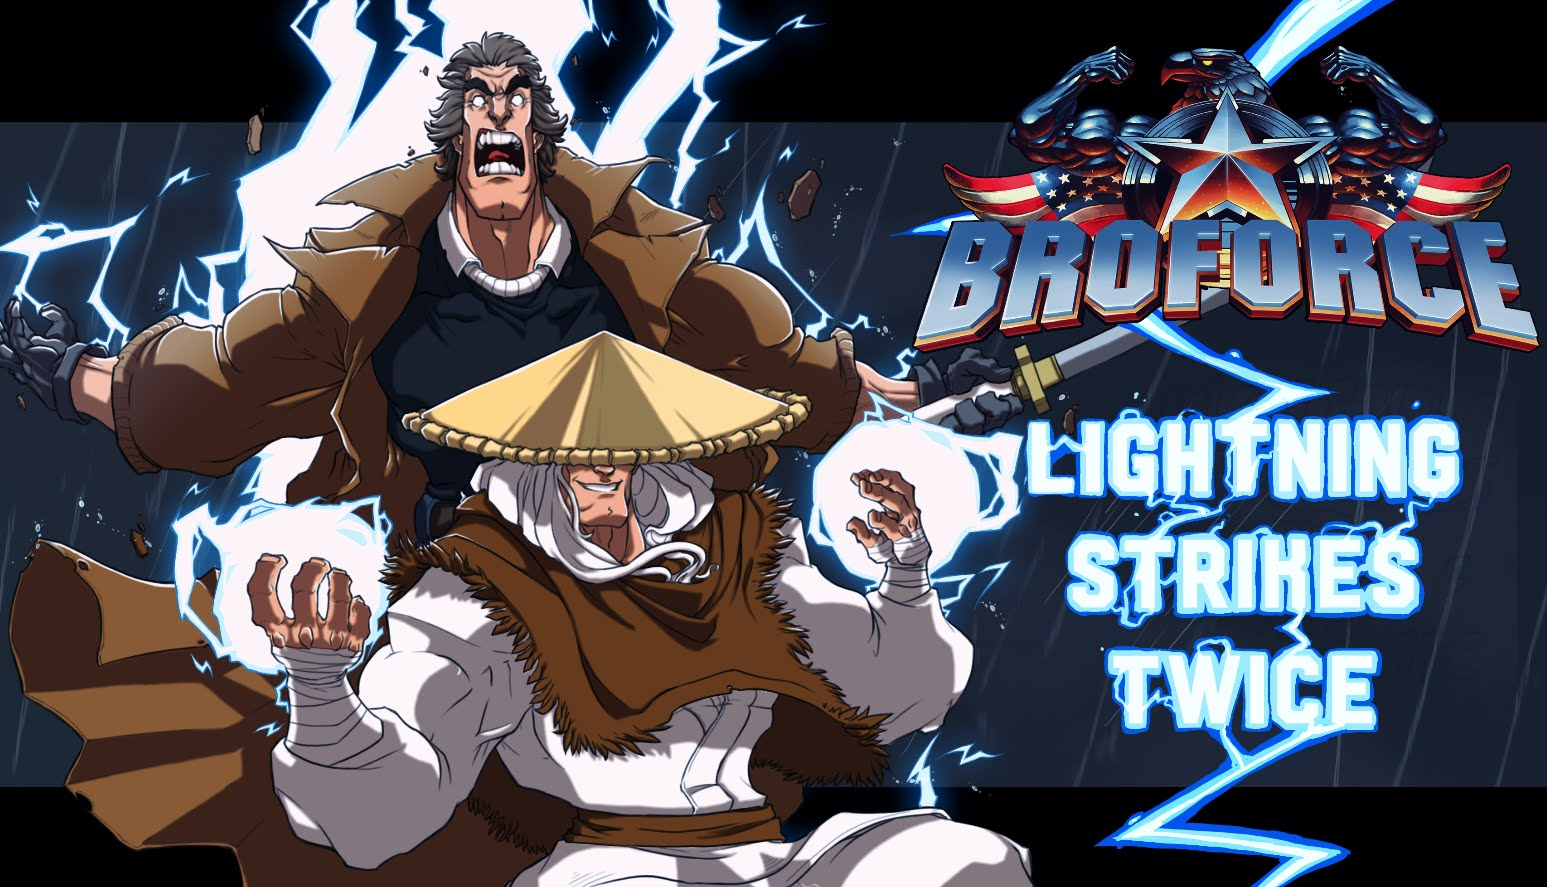 Broforce Lightning Strikes Twice Update thumbnail